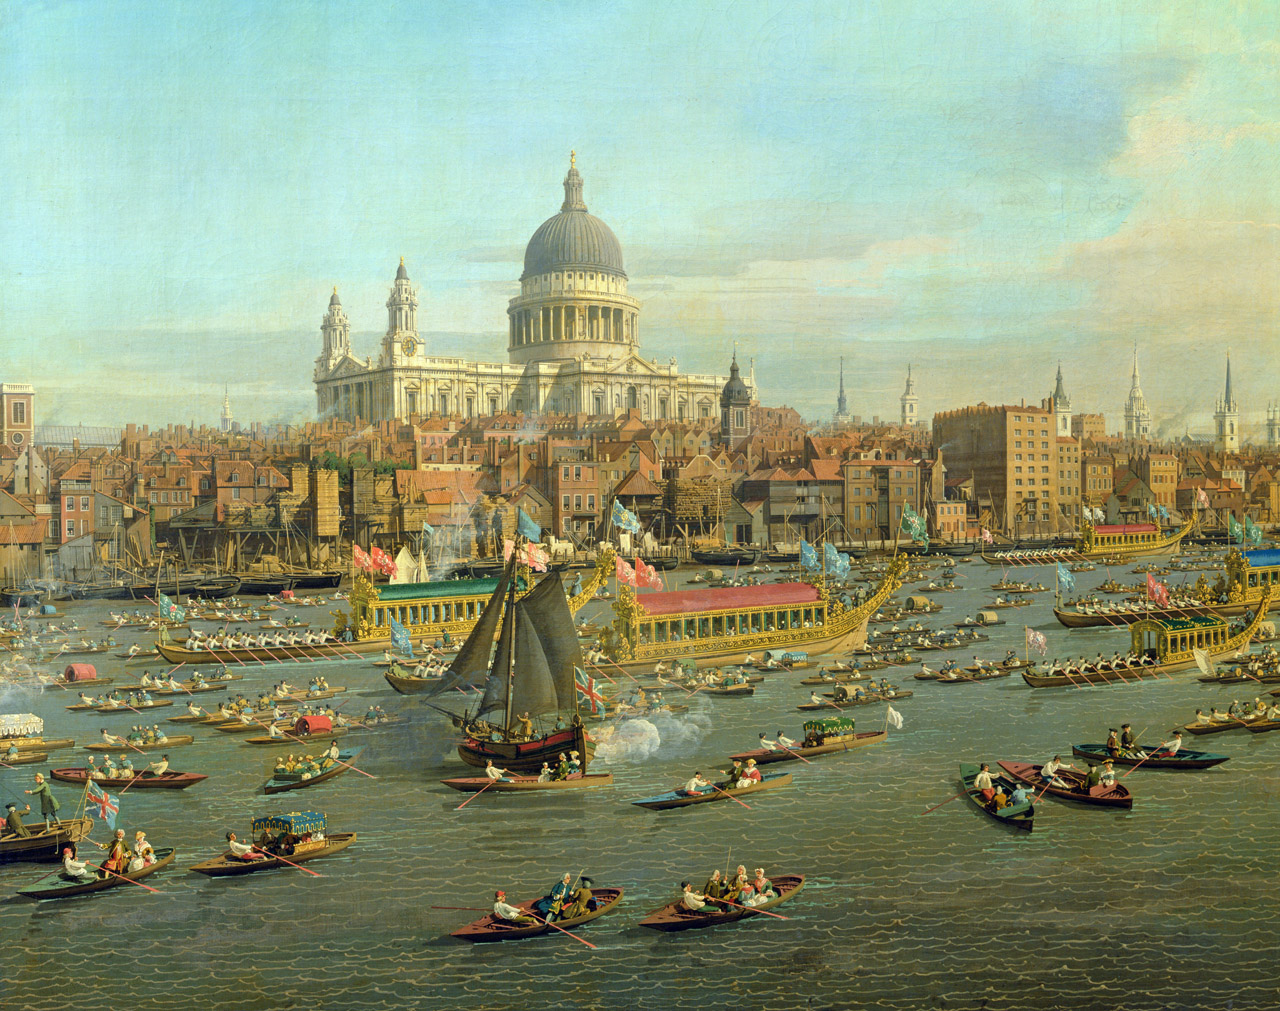 London: The Thames on Lord Mayor's Day (detail), by Antonio Canaletto, c. 1750..